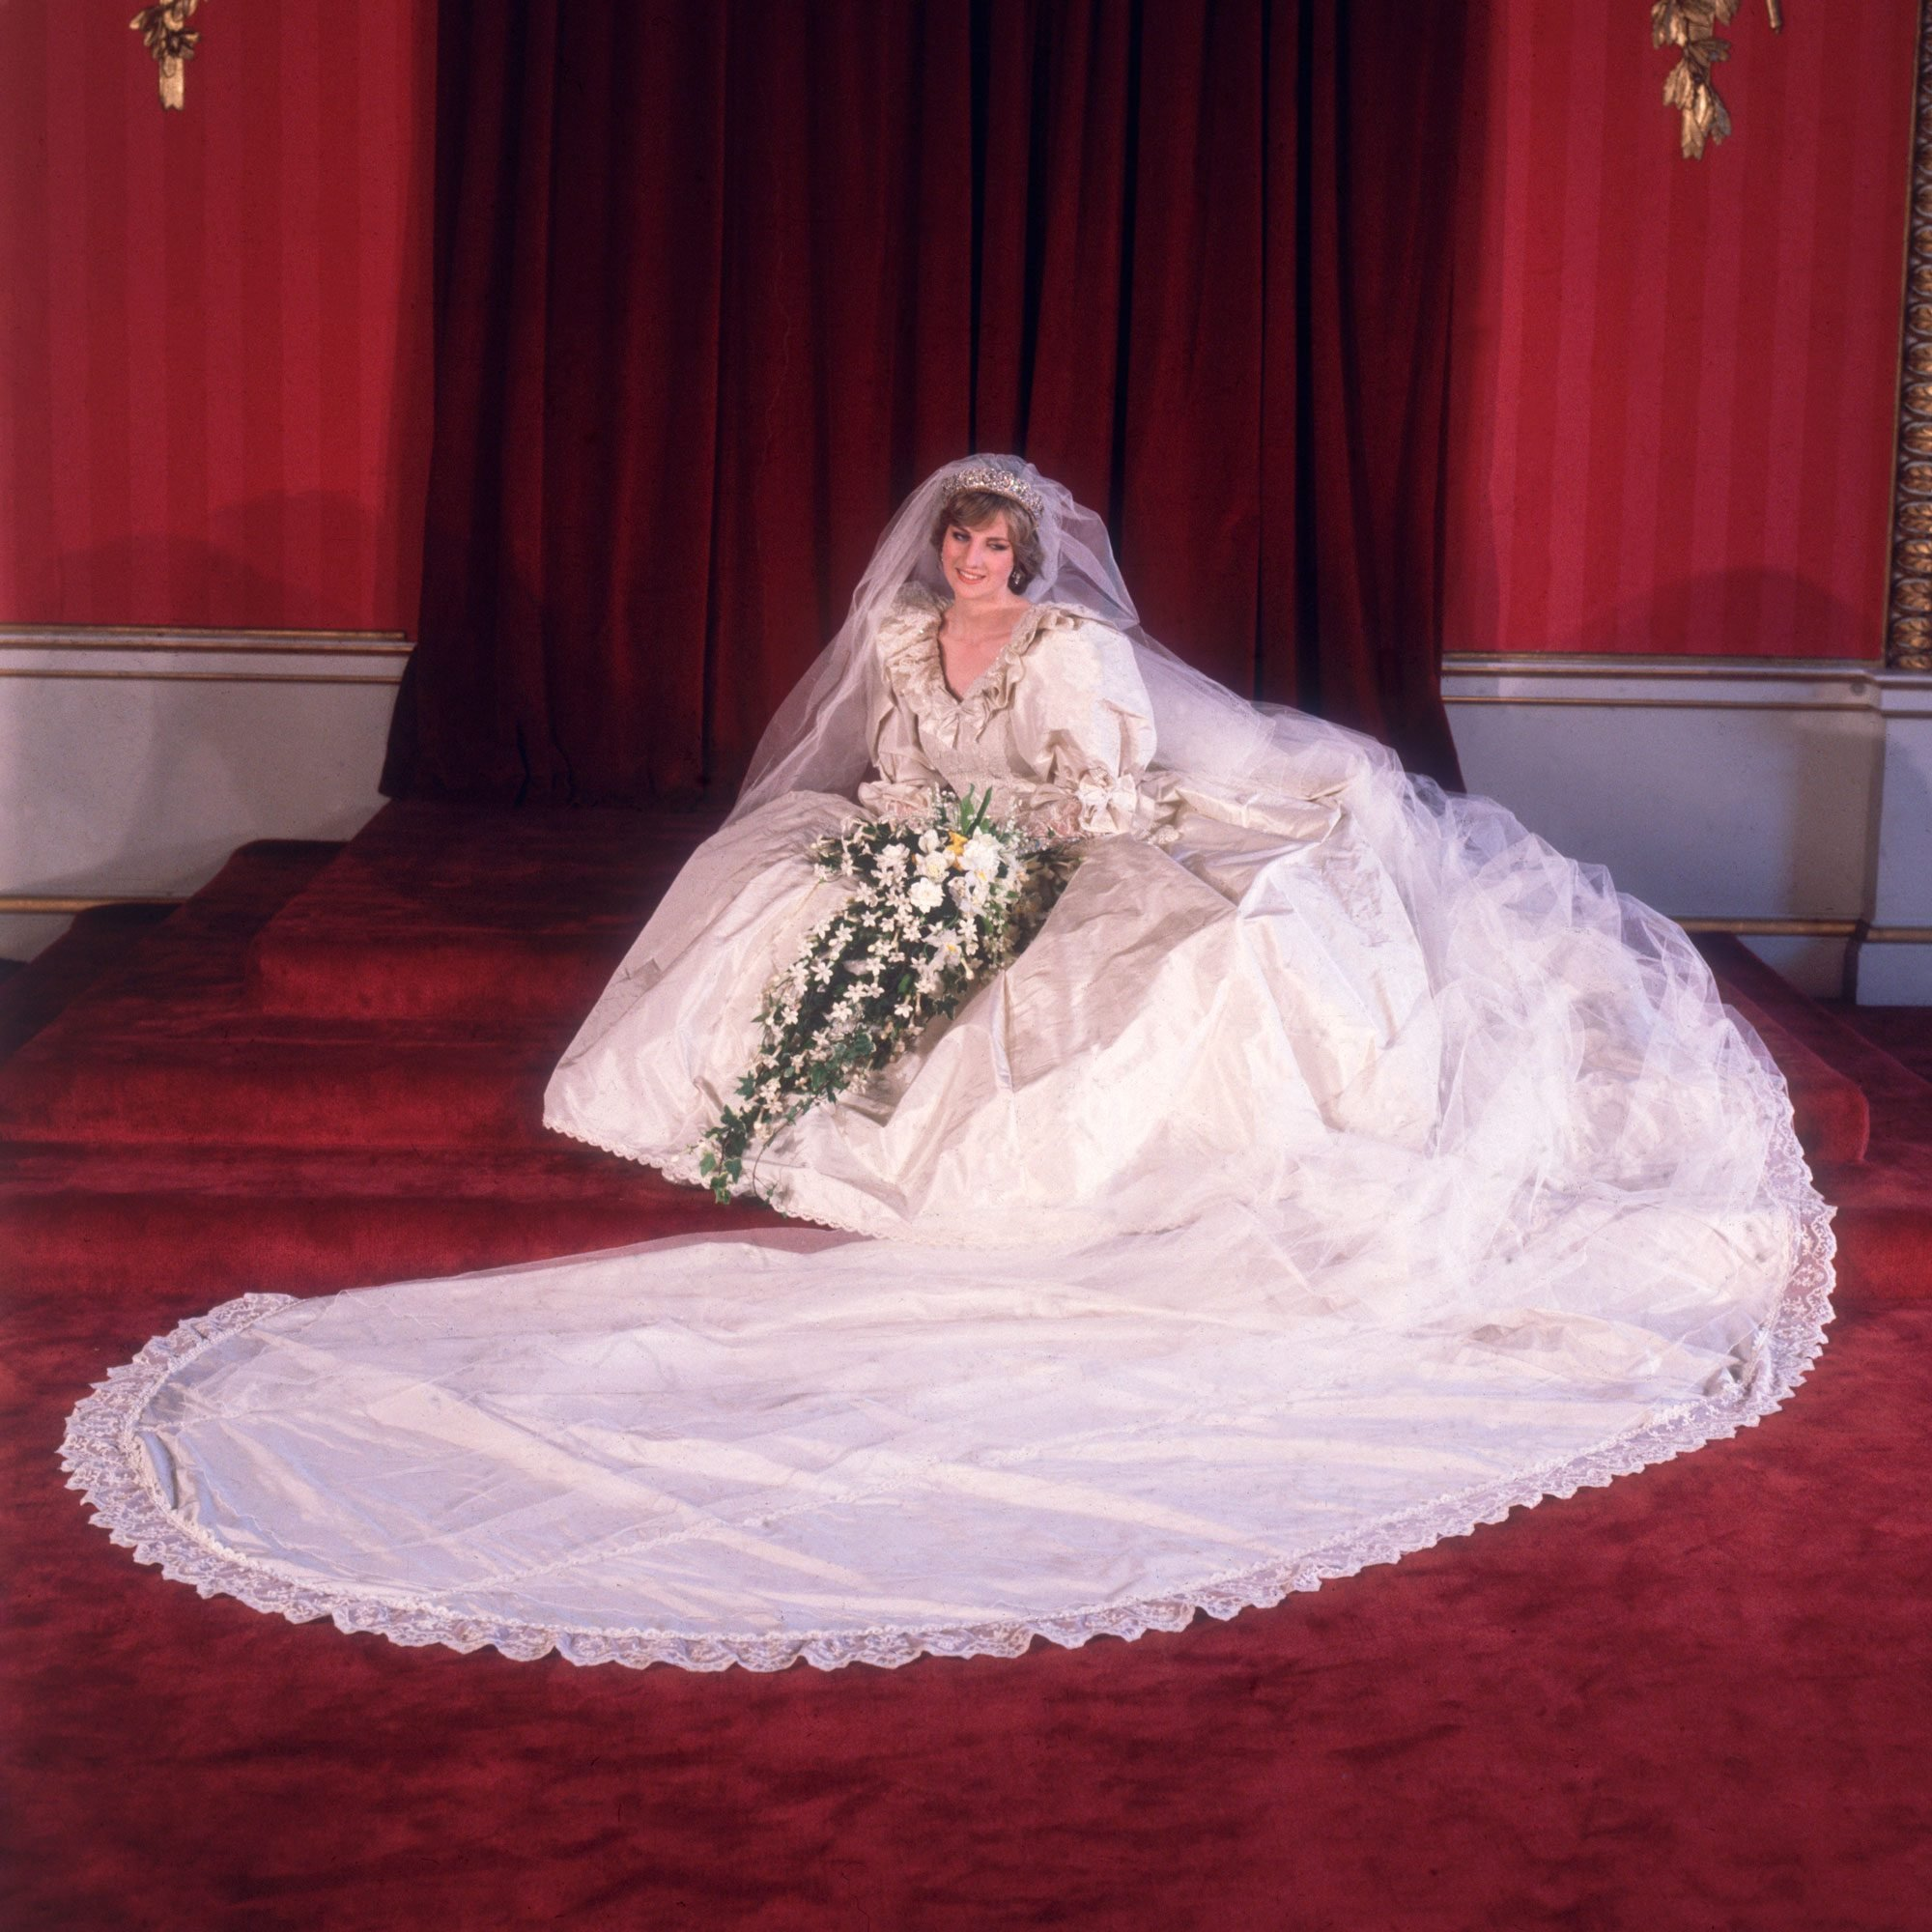 All the Details About Princess Diana's Wedding Dress